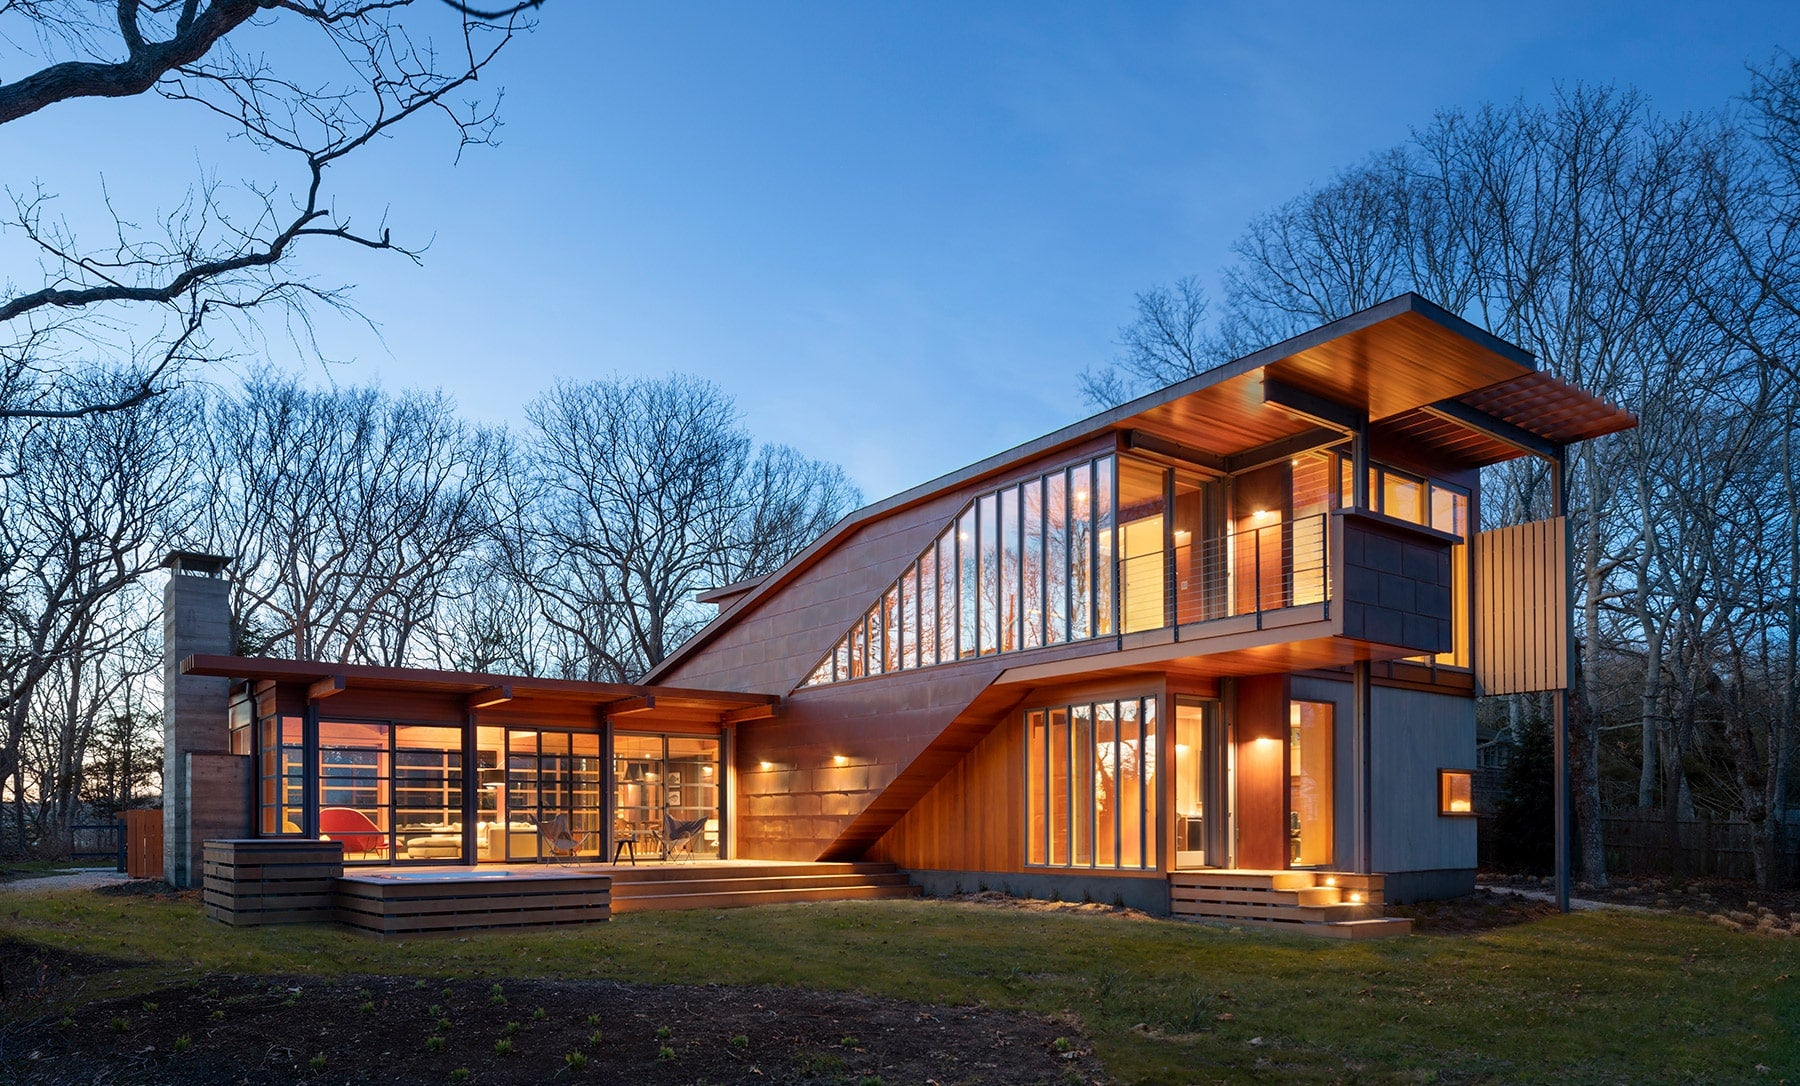 Exterior of the Shelter Island residence, clad in copper and Western red cedar